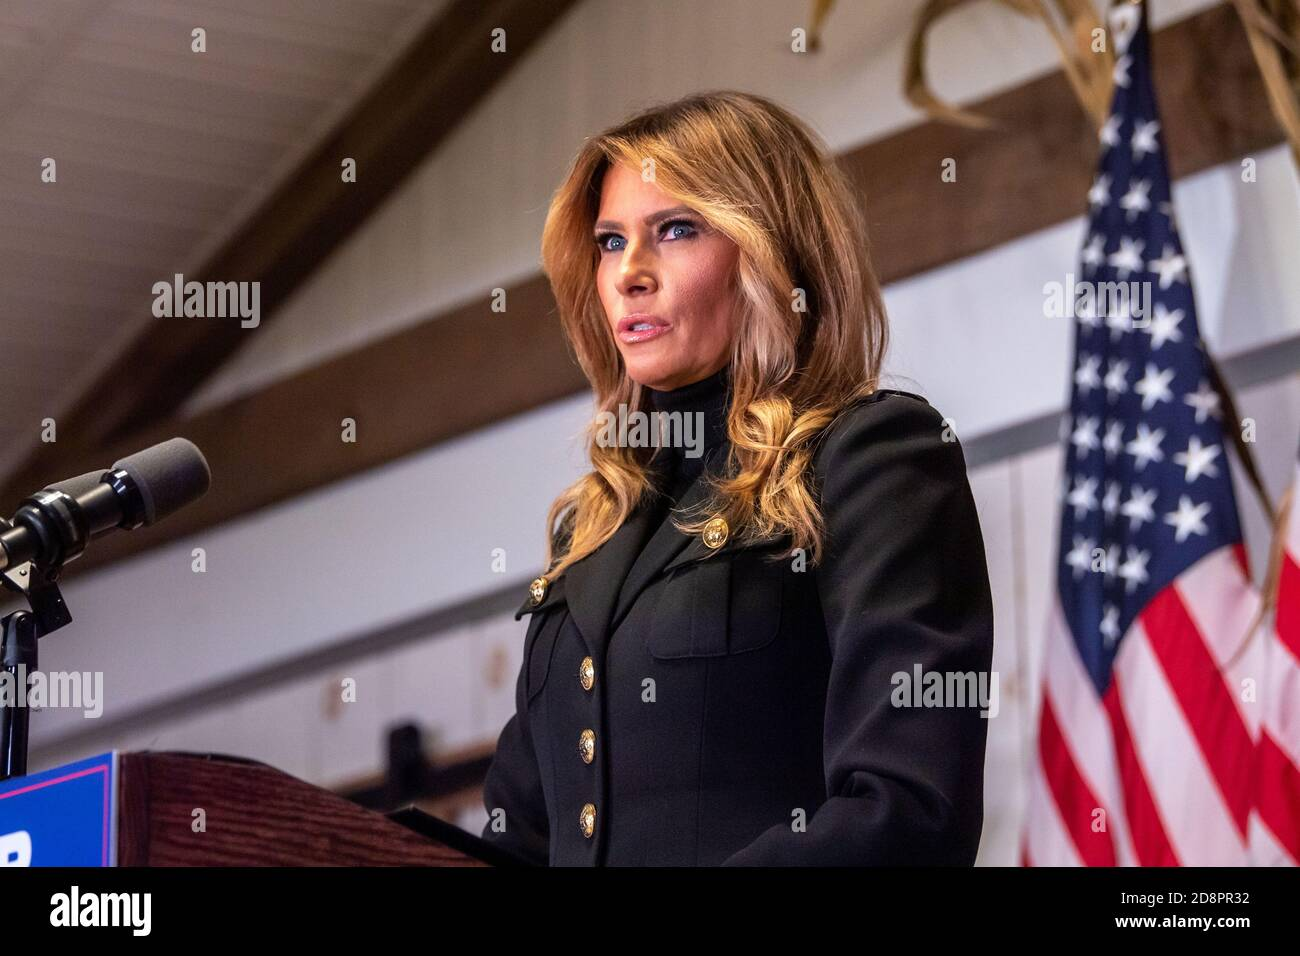 """Wapwallopen, PA – OCTOBER 31: U.S. First Lady Melania Trump speaks to President Trump's supporters at a """"Make America Great Again"""" campaign rally even Stock Photo"""